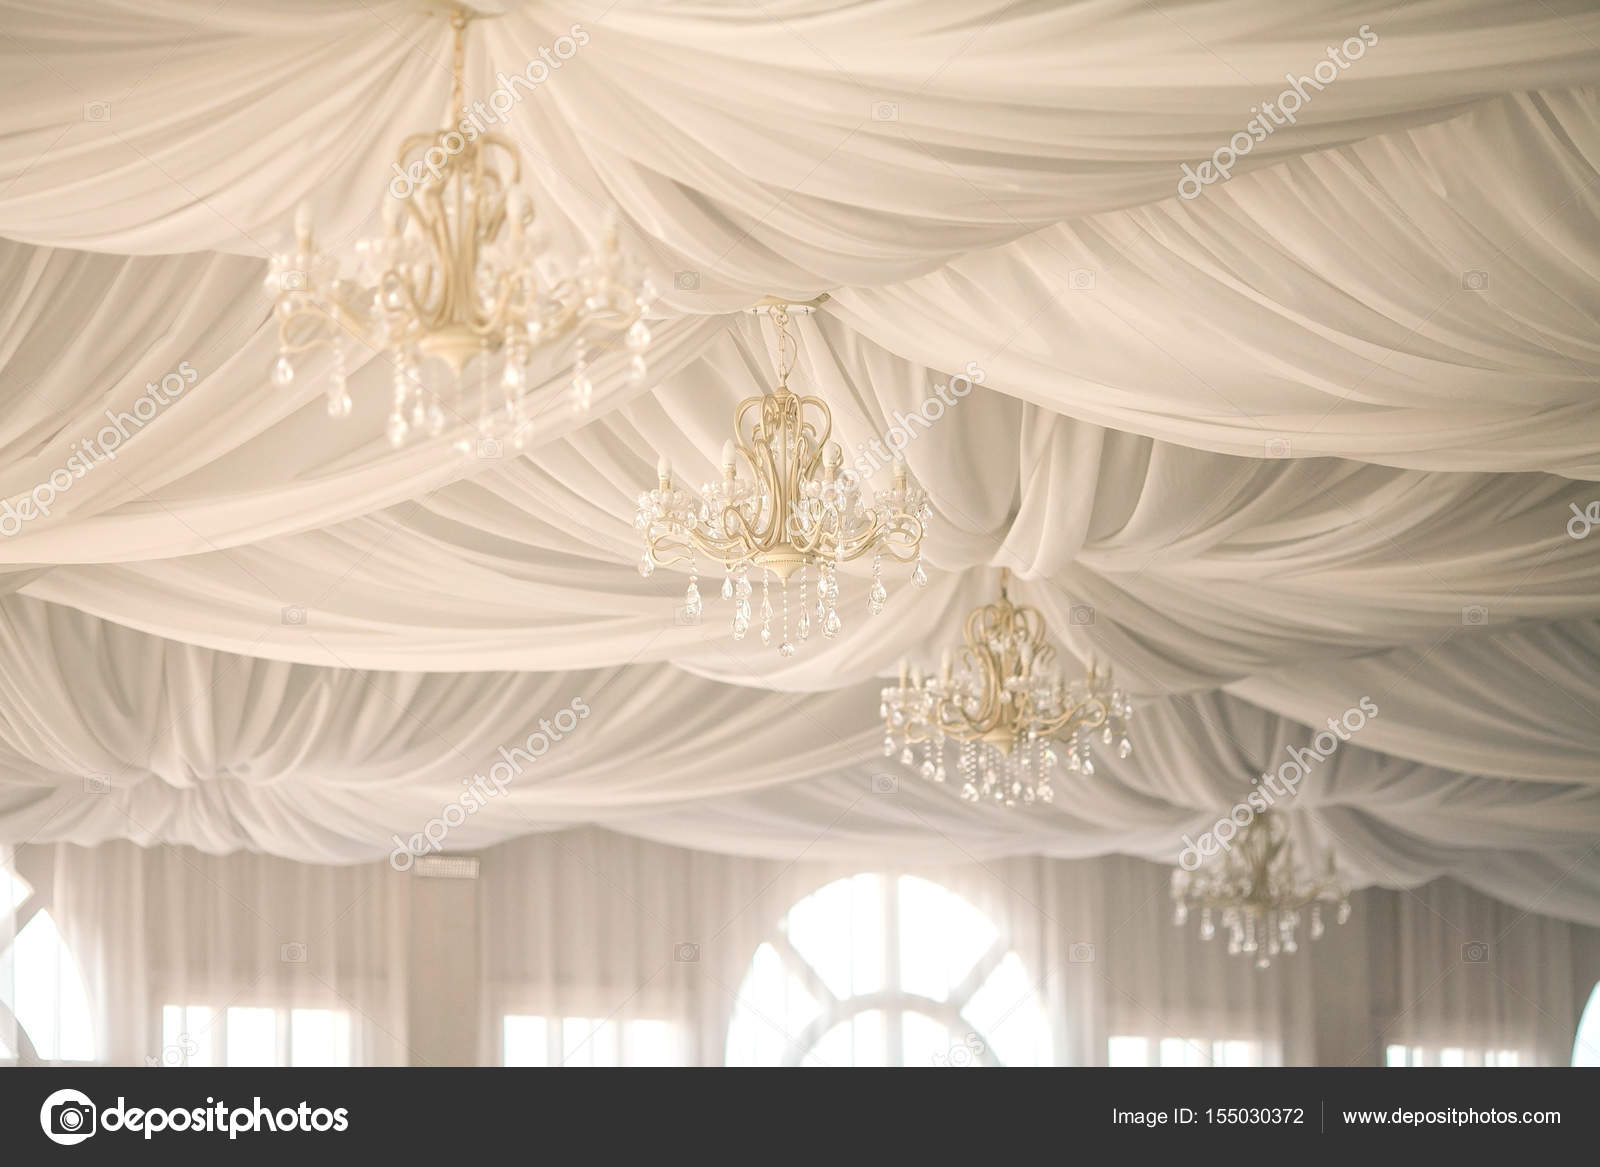 Pictures Hanging Fabric From Ceiling In Bedroom Chandeliers On A Ceiling Decorated By The Draped White Fabrics A Wedding Decor In A White Tent Stock Photo C Melnikofd Yandex Ru 155030372